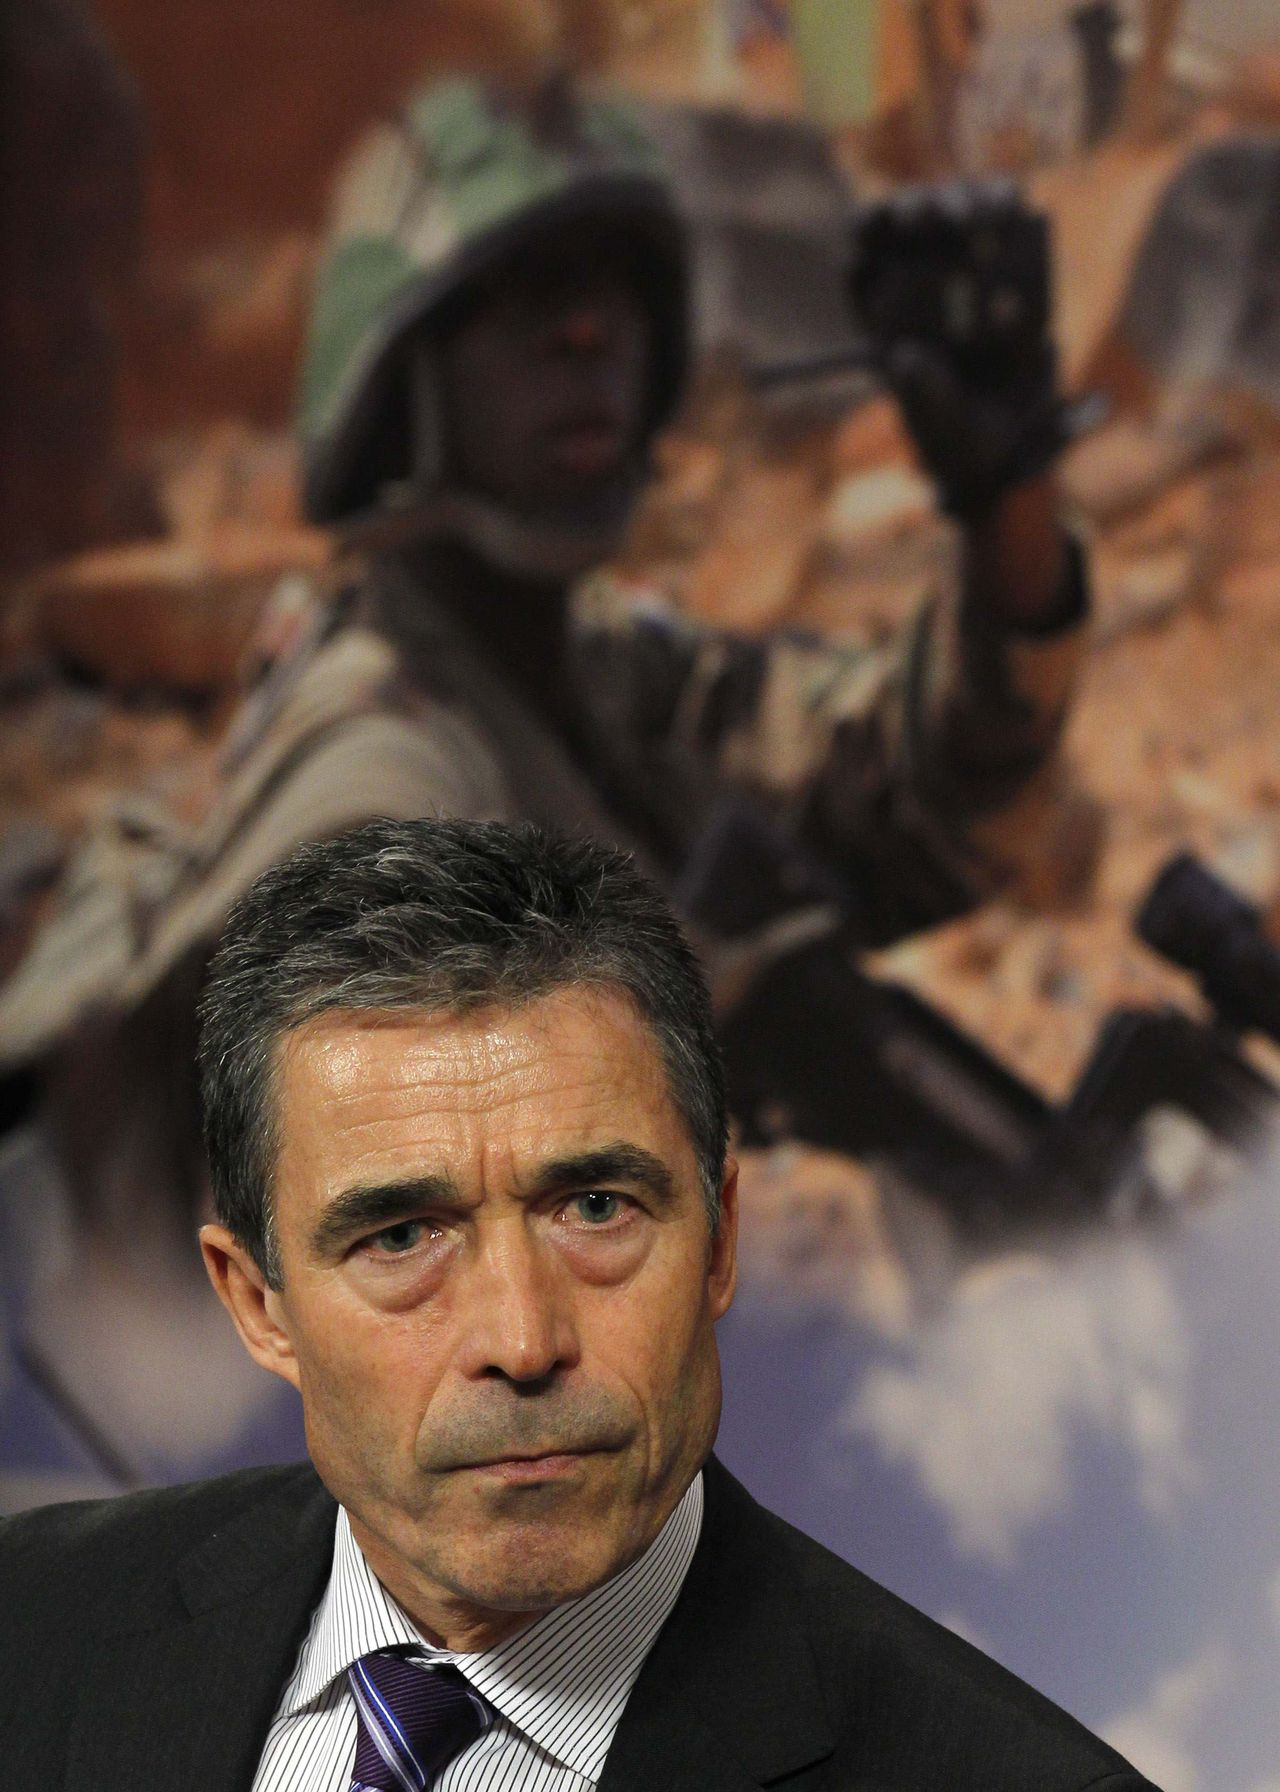 NATO Secretary-General Anders Fogh Rasmussen briefs the media during a NATO defence ministers meeting at the Alliance headquarters in Brussels June 8, 2011. NATO sought broader support for the Western bombing campaign in Libya on Wednesday with alliance air power stretched by the heaviest strikes on Tripoli so far. REUTERS/Yves Herman (BELGIUM - Tags: POLITICS MILITARY CONFLICT HEADSHOT)